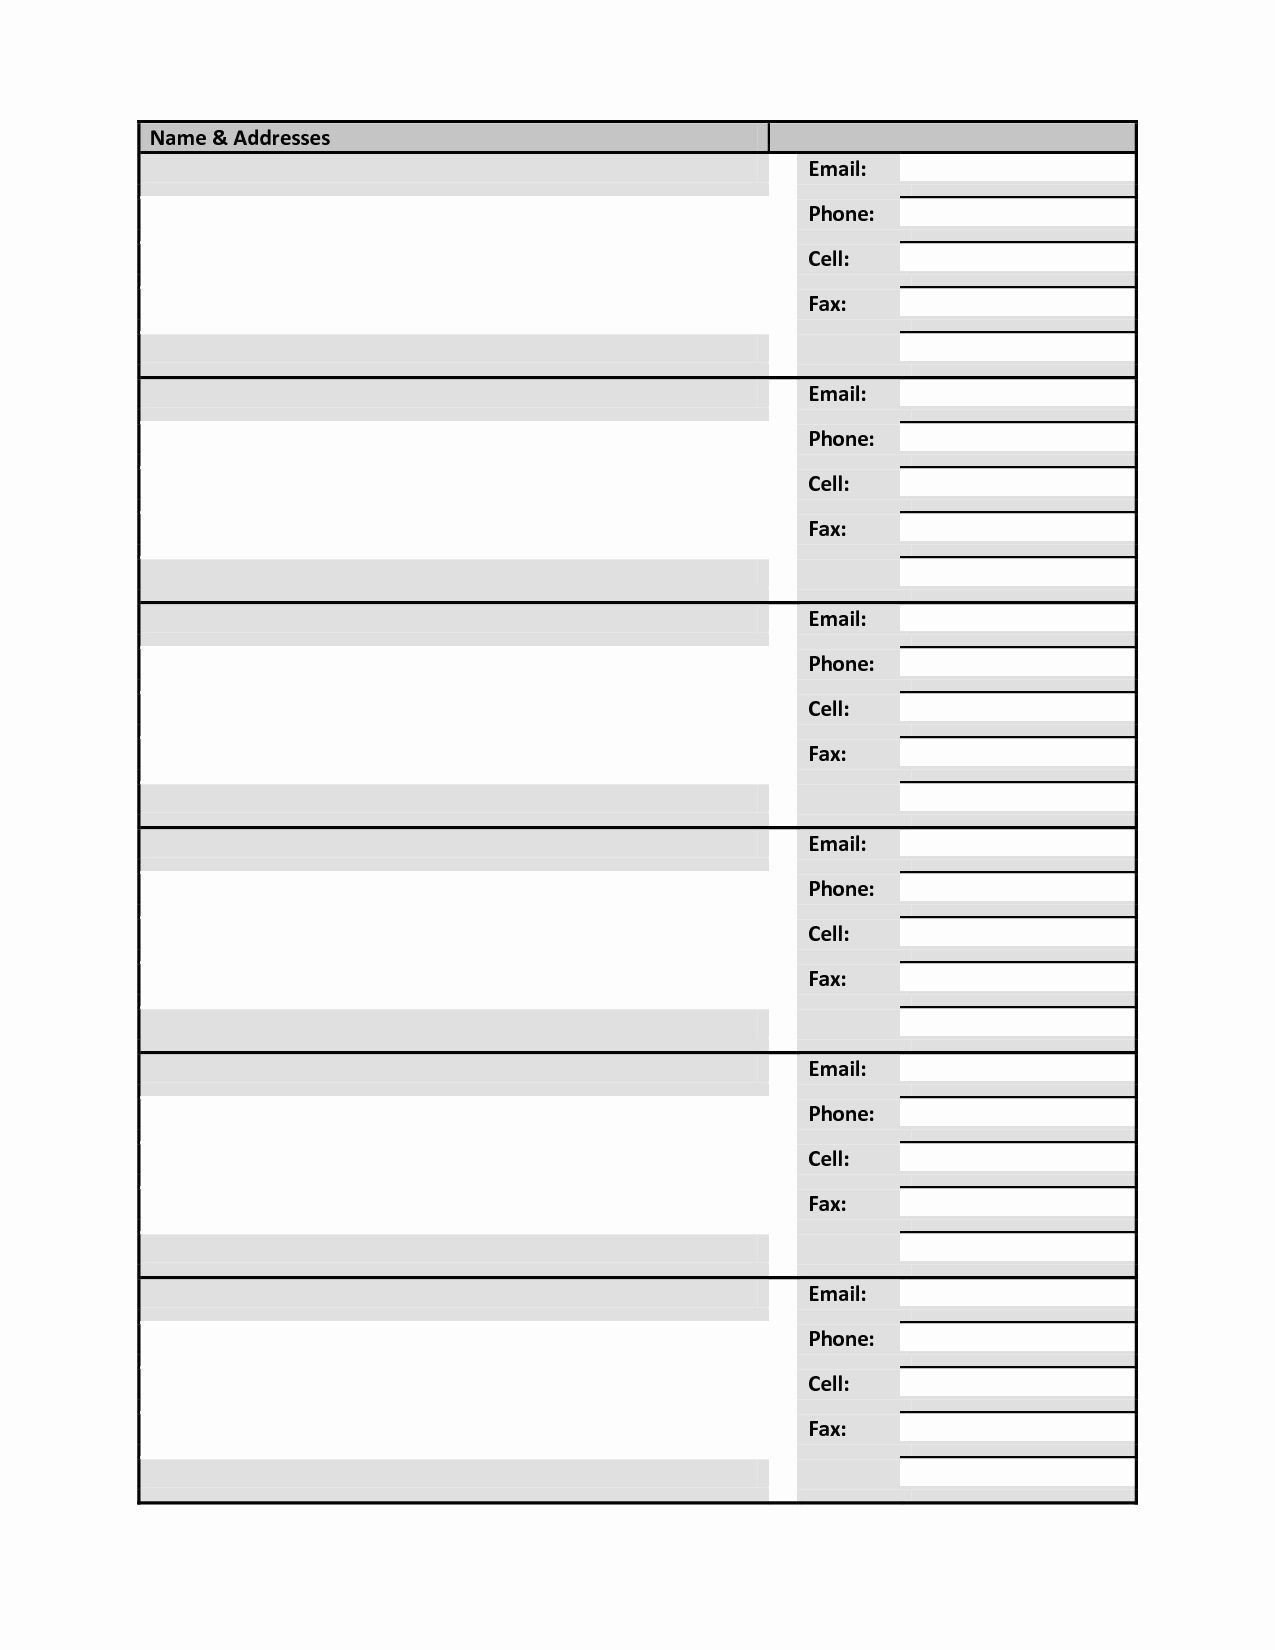 Excel Address Book Template